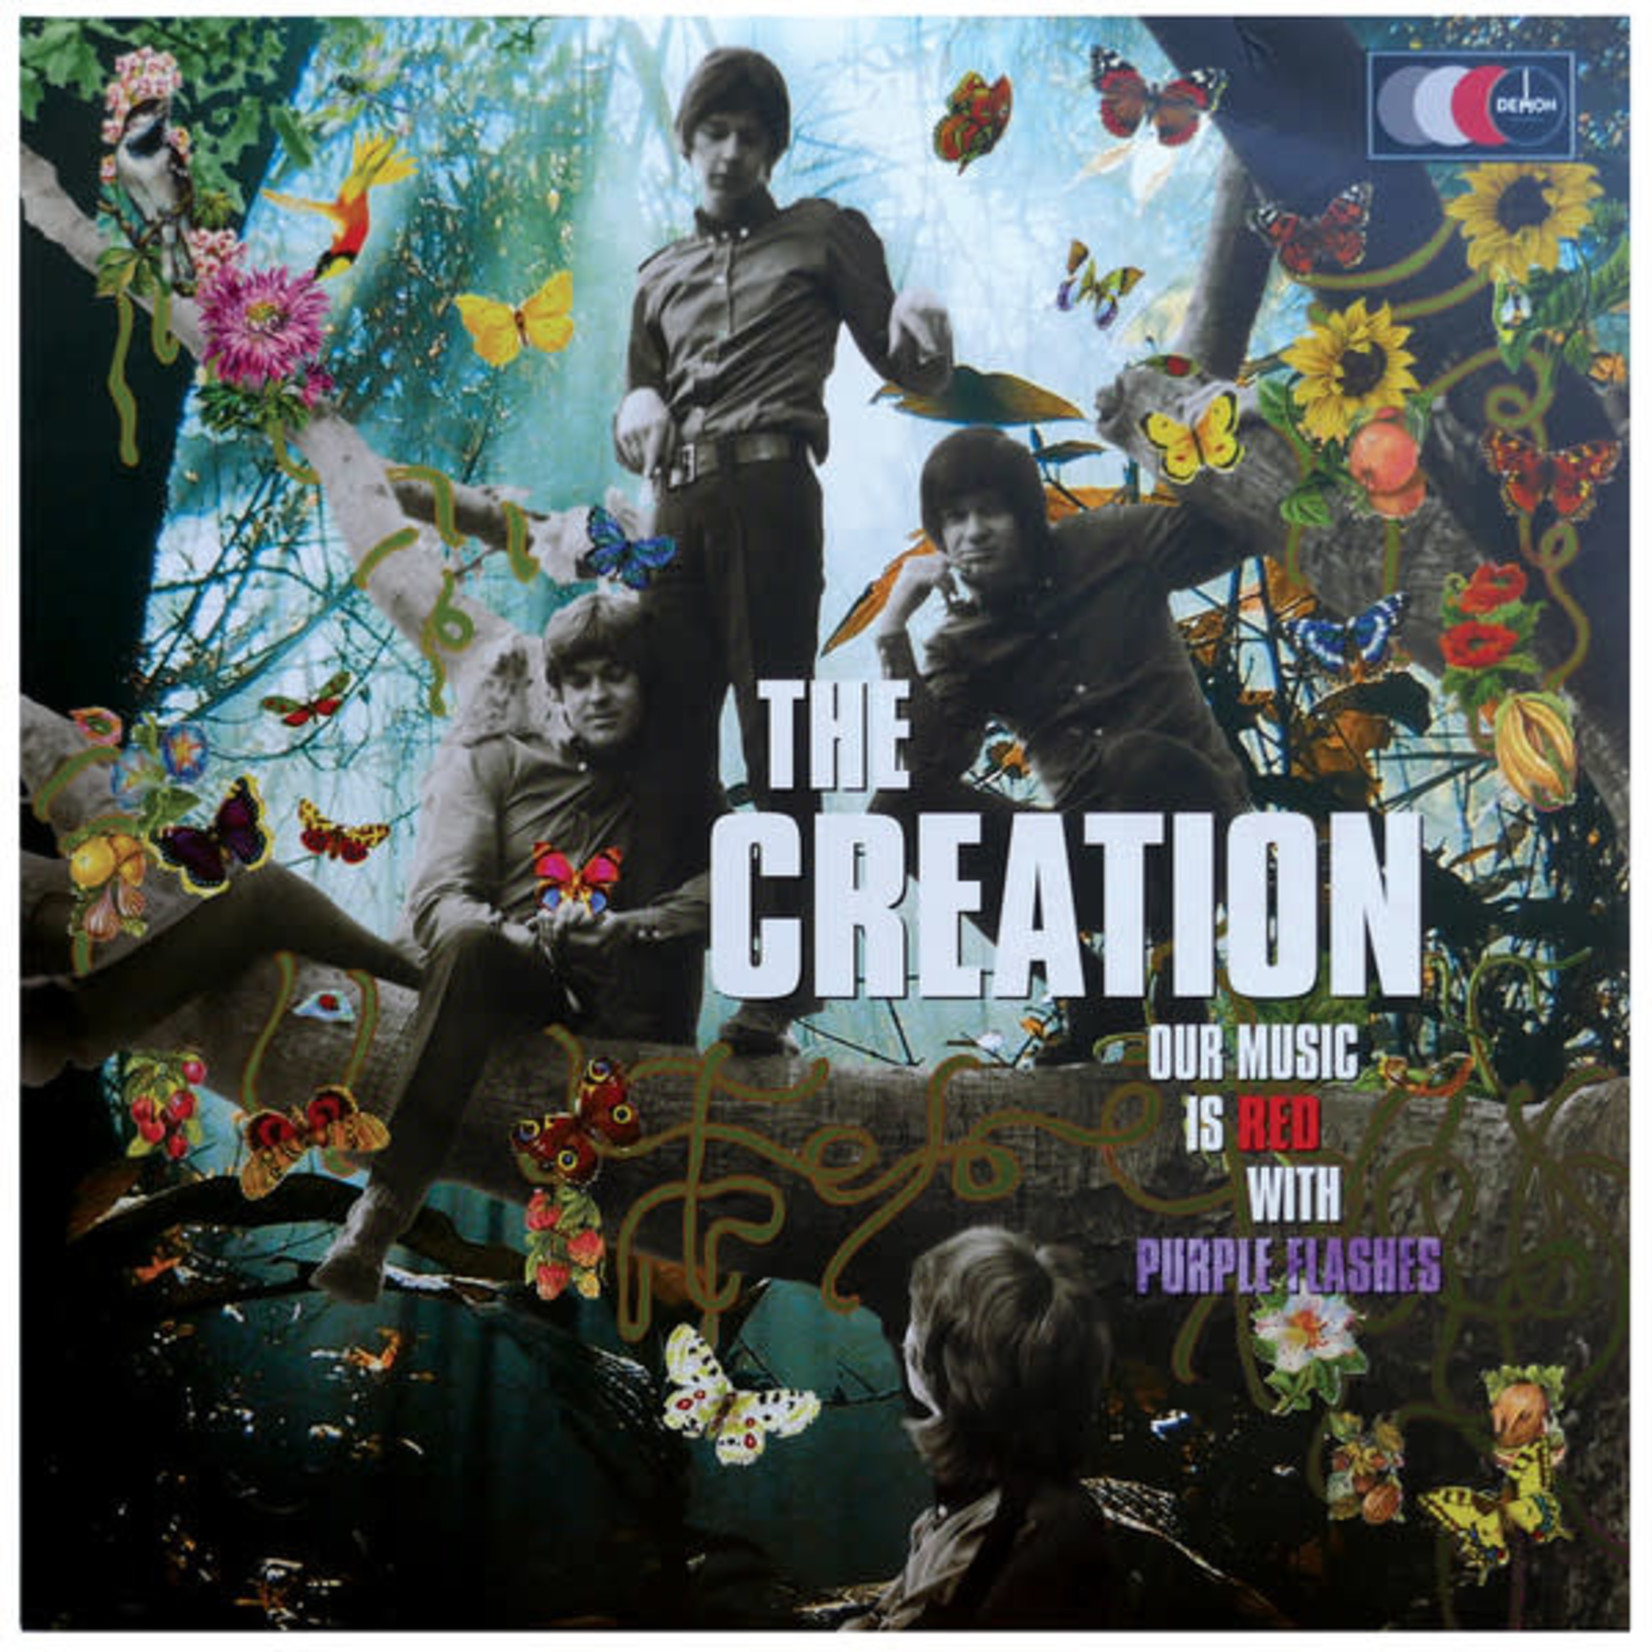 Vinyl The Creation - Our Music Is Red With Purple Flashes